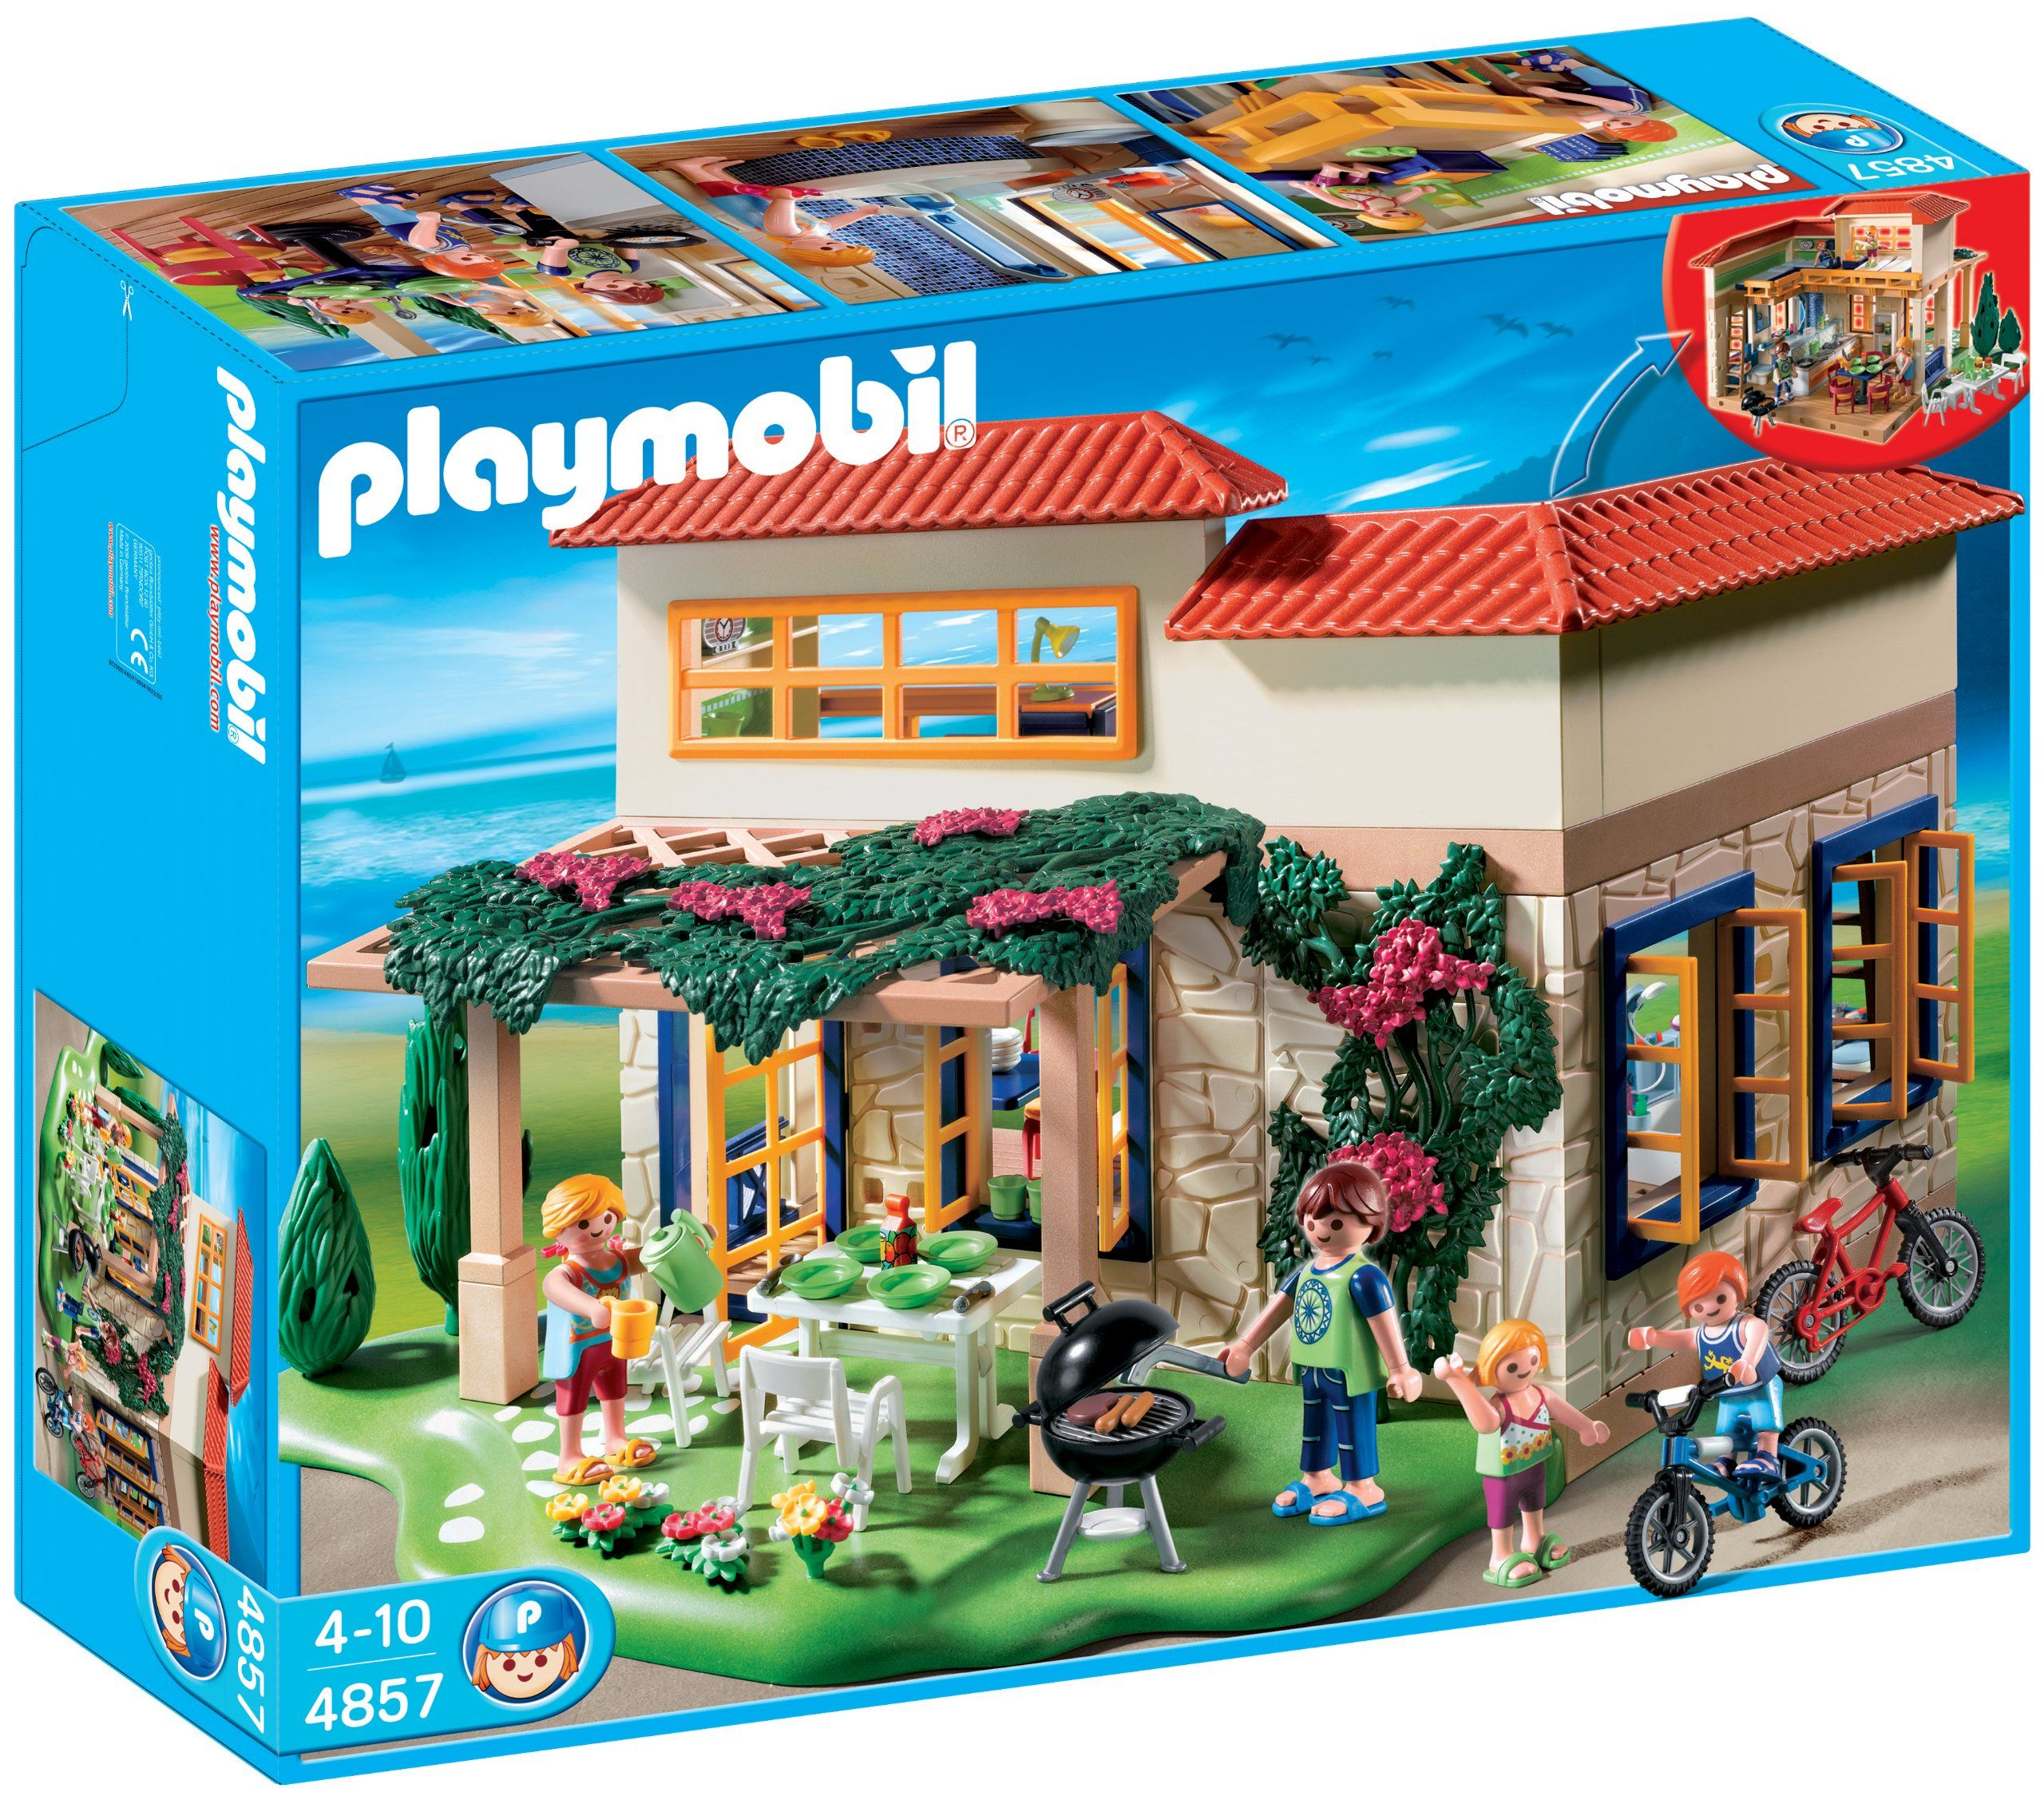 Playmobil 4857 jeu de construction maison de - Jeu de construction de maison virtuel ...